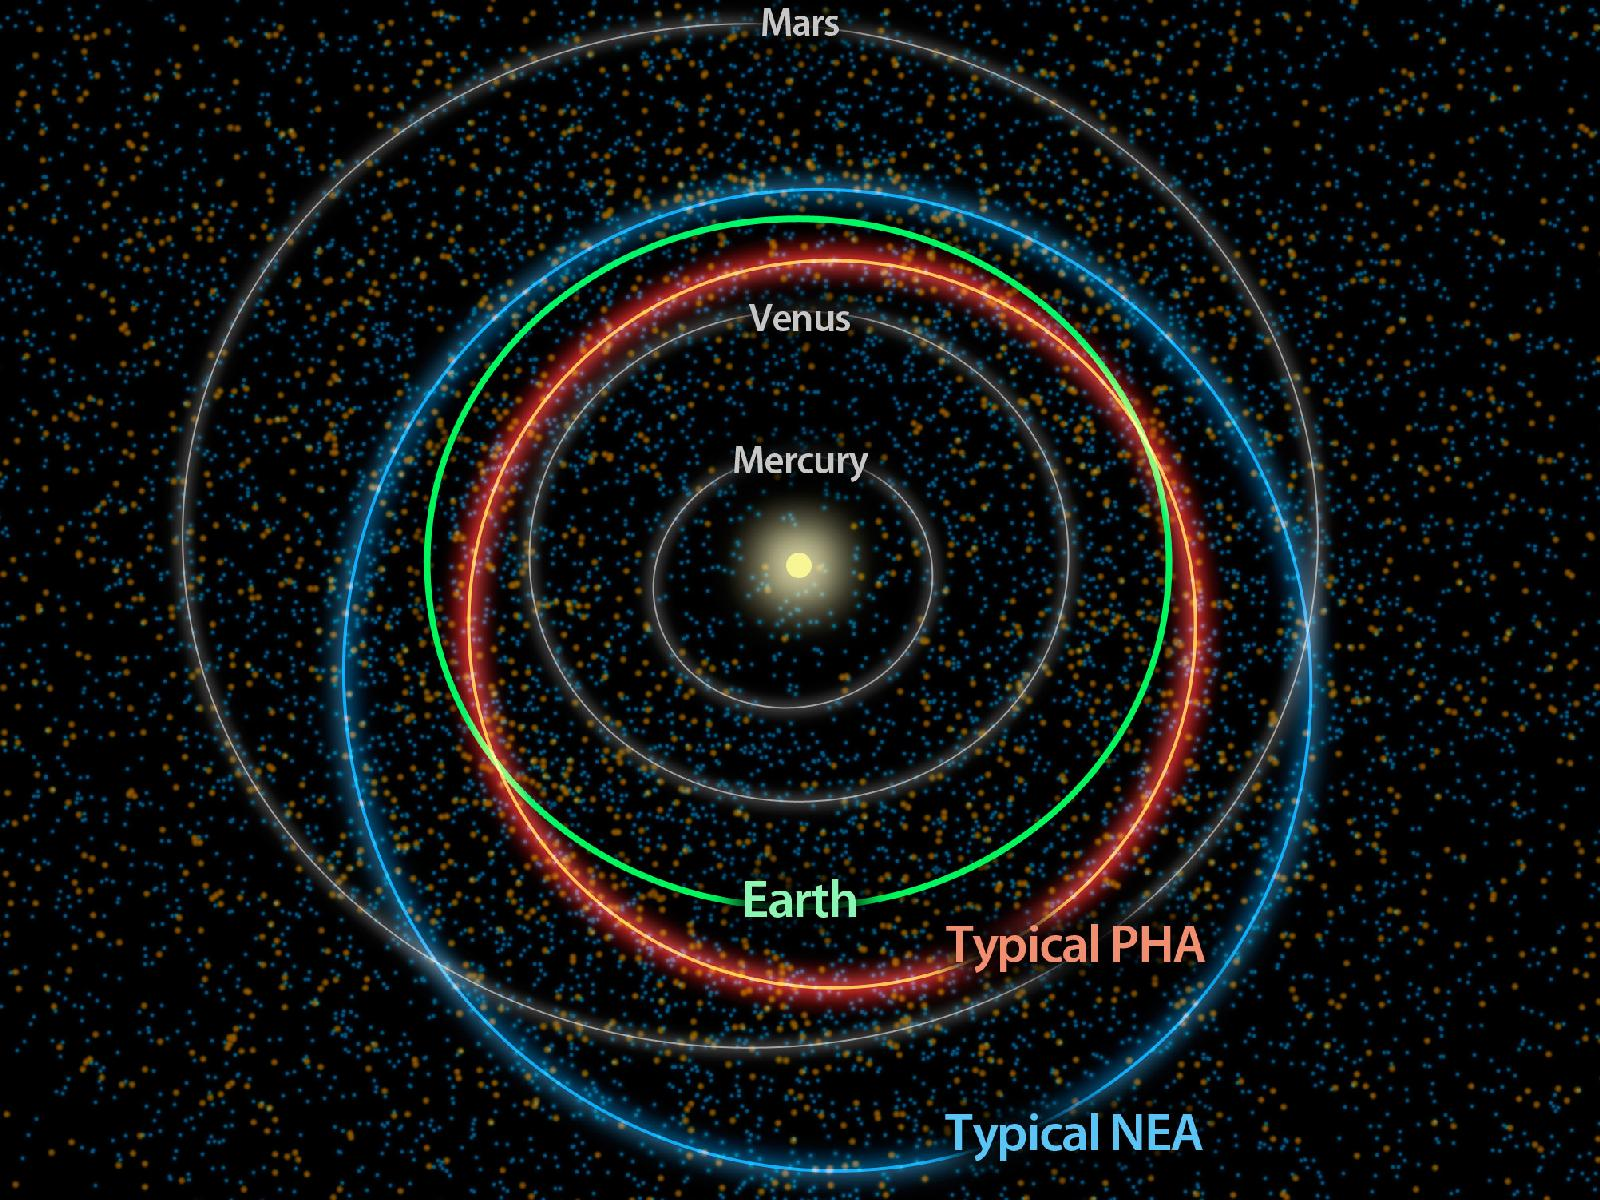 Orbits of Potentially Hazardous Asteroids